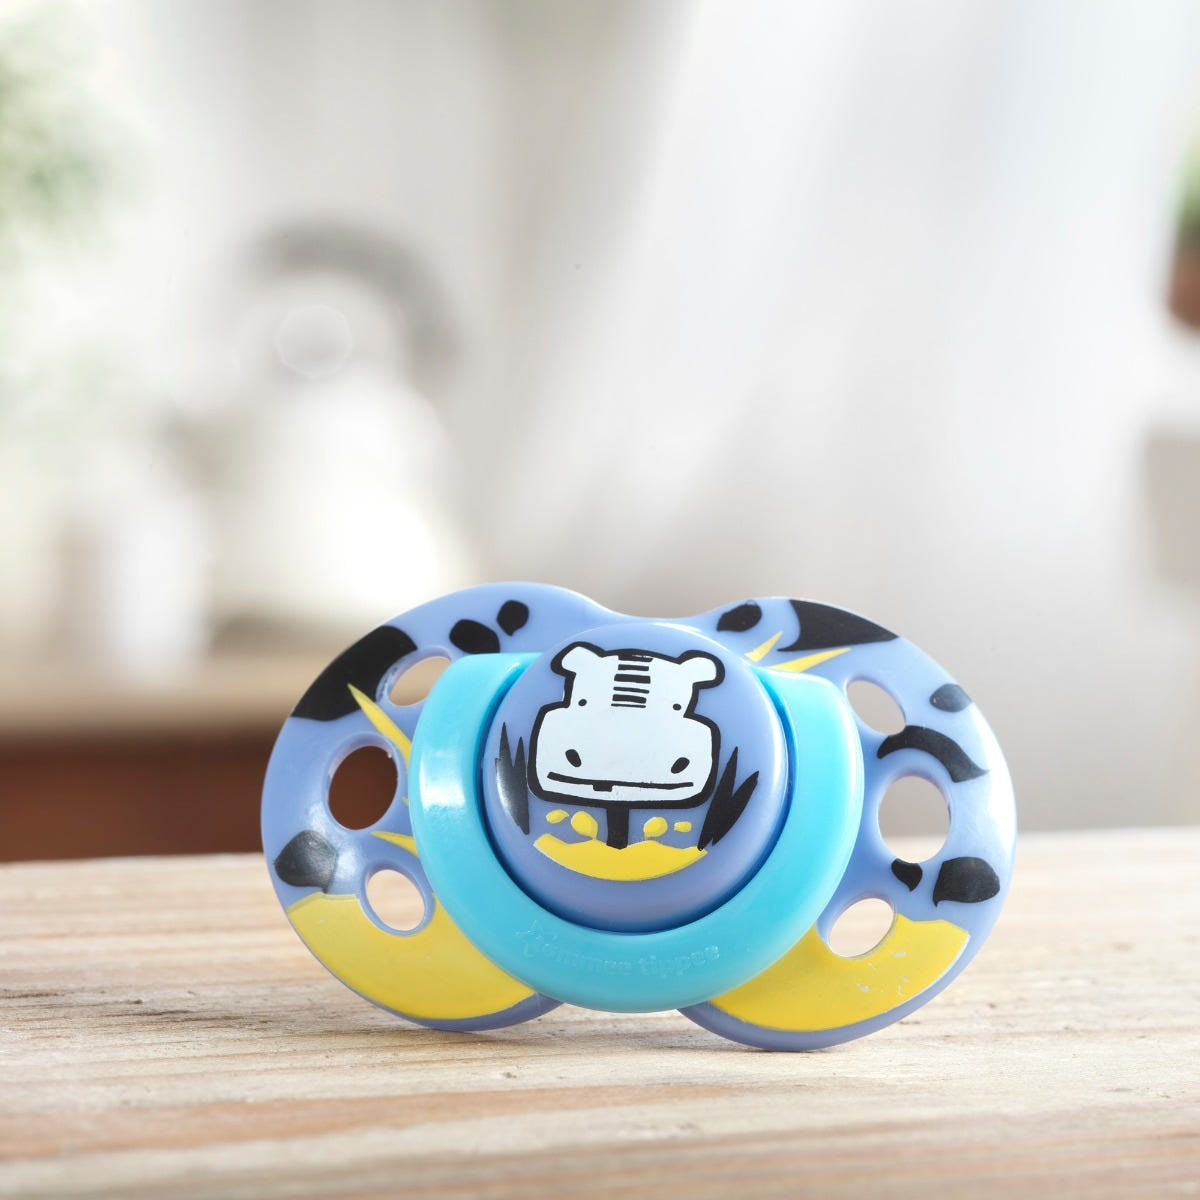 6-18-month-fun-style-hippo-soother-in-blue-on-counter-top